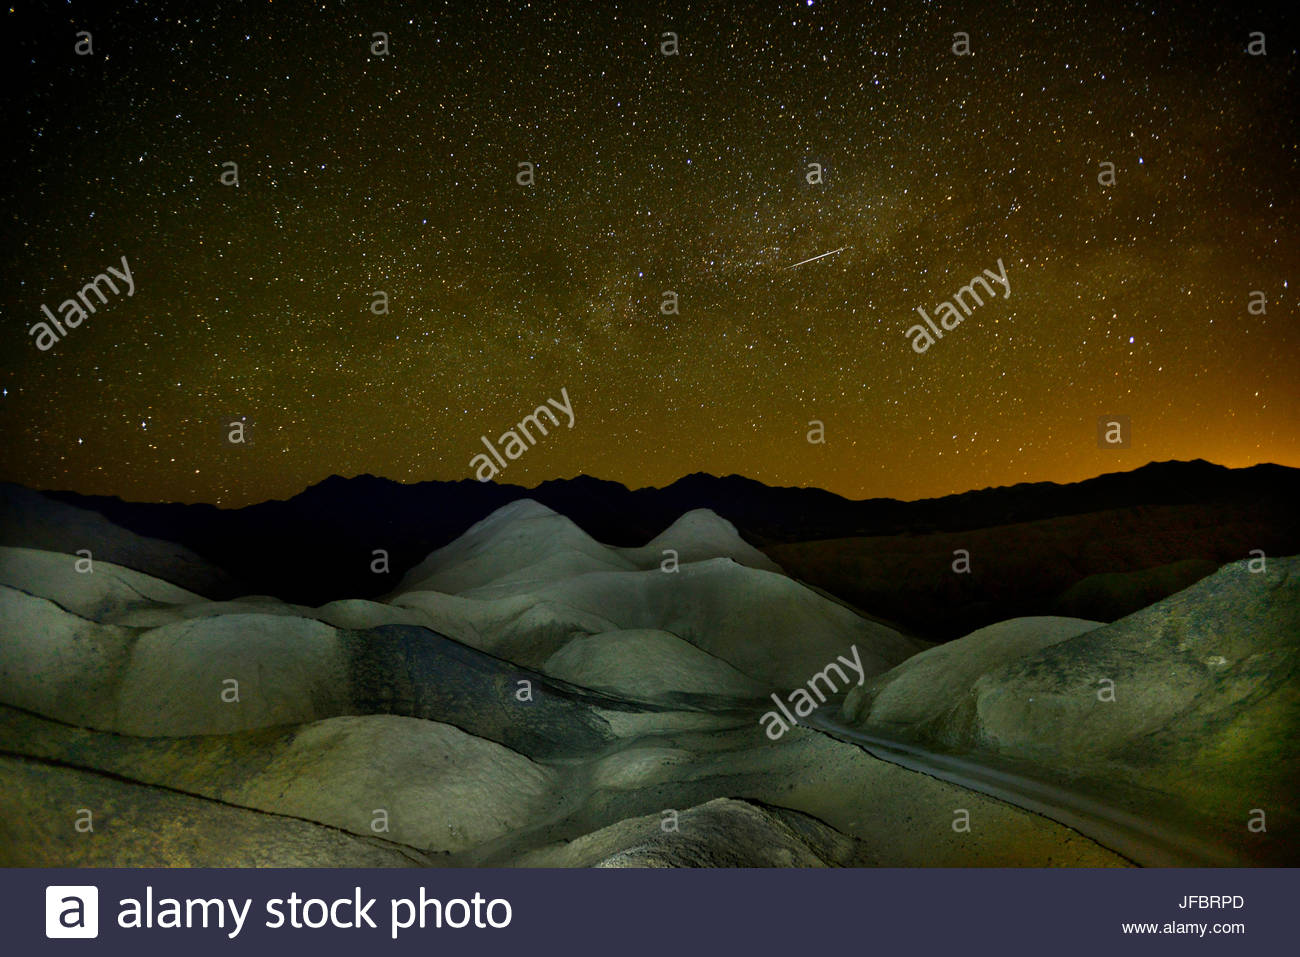 A starry sky over Twenty Mule Team Canyon. - Stock Image